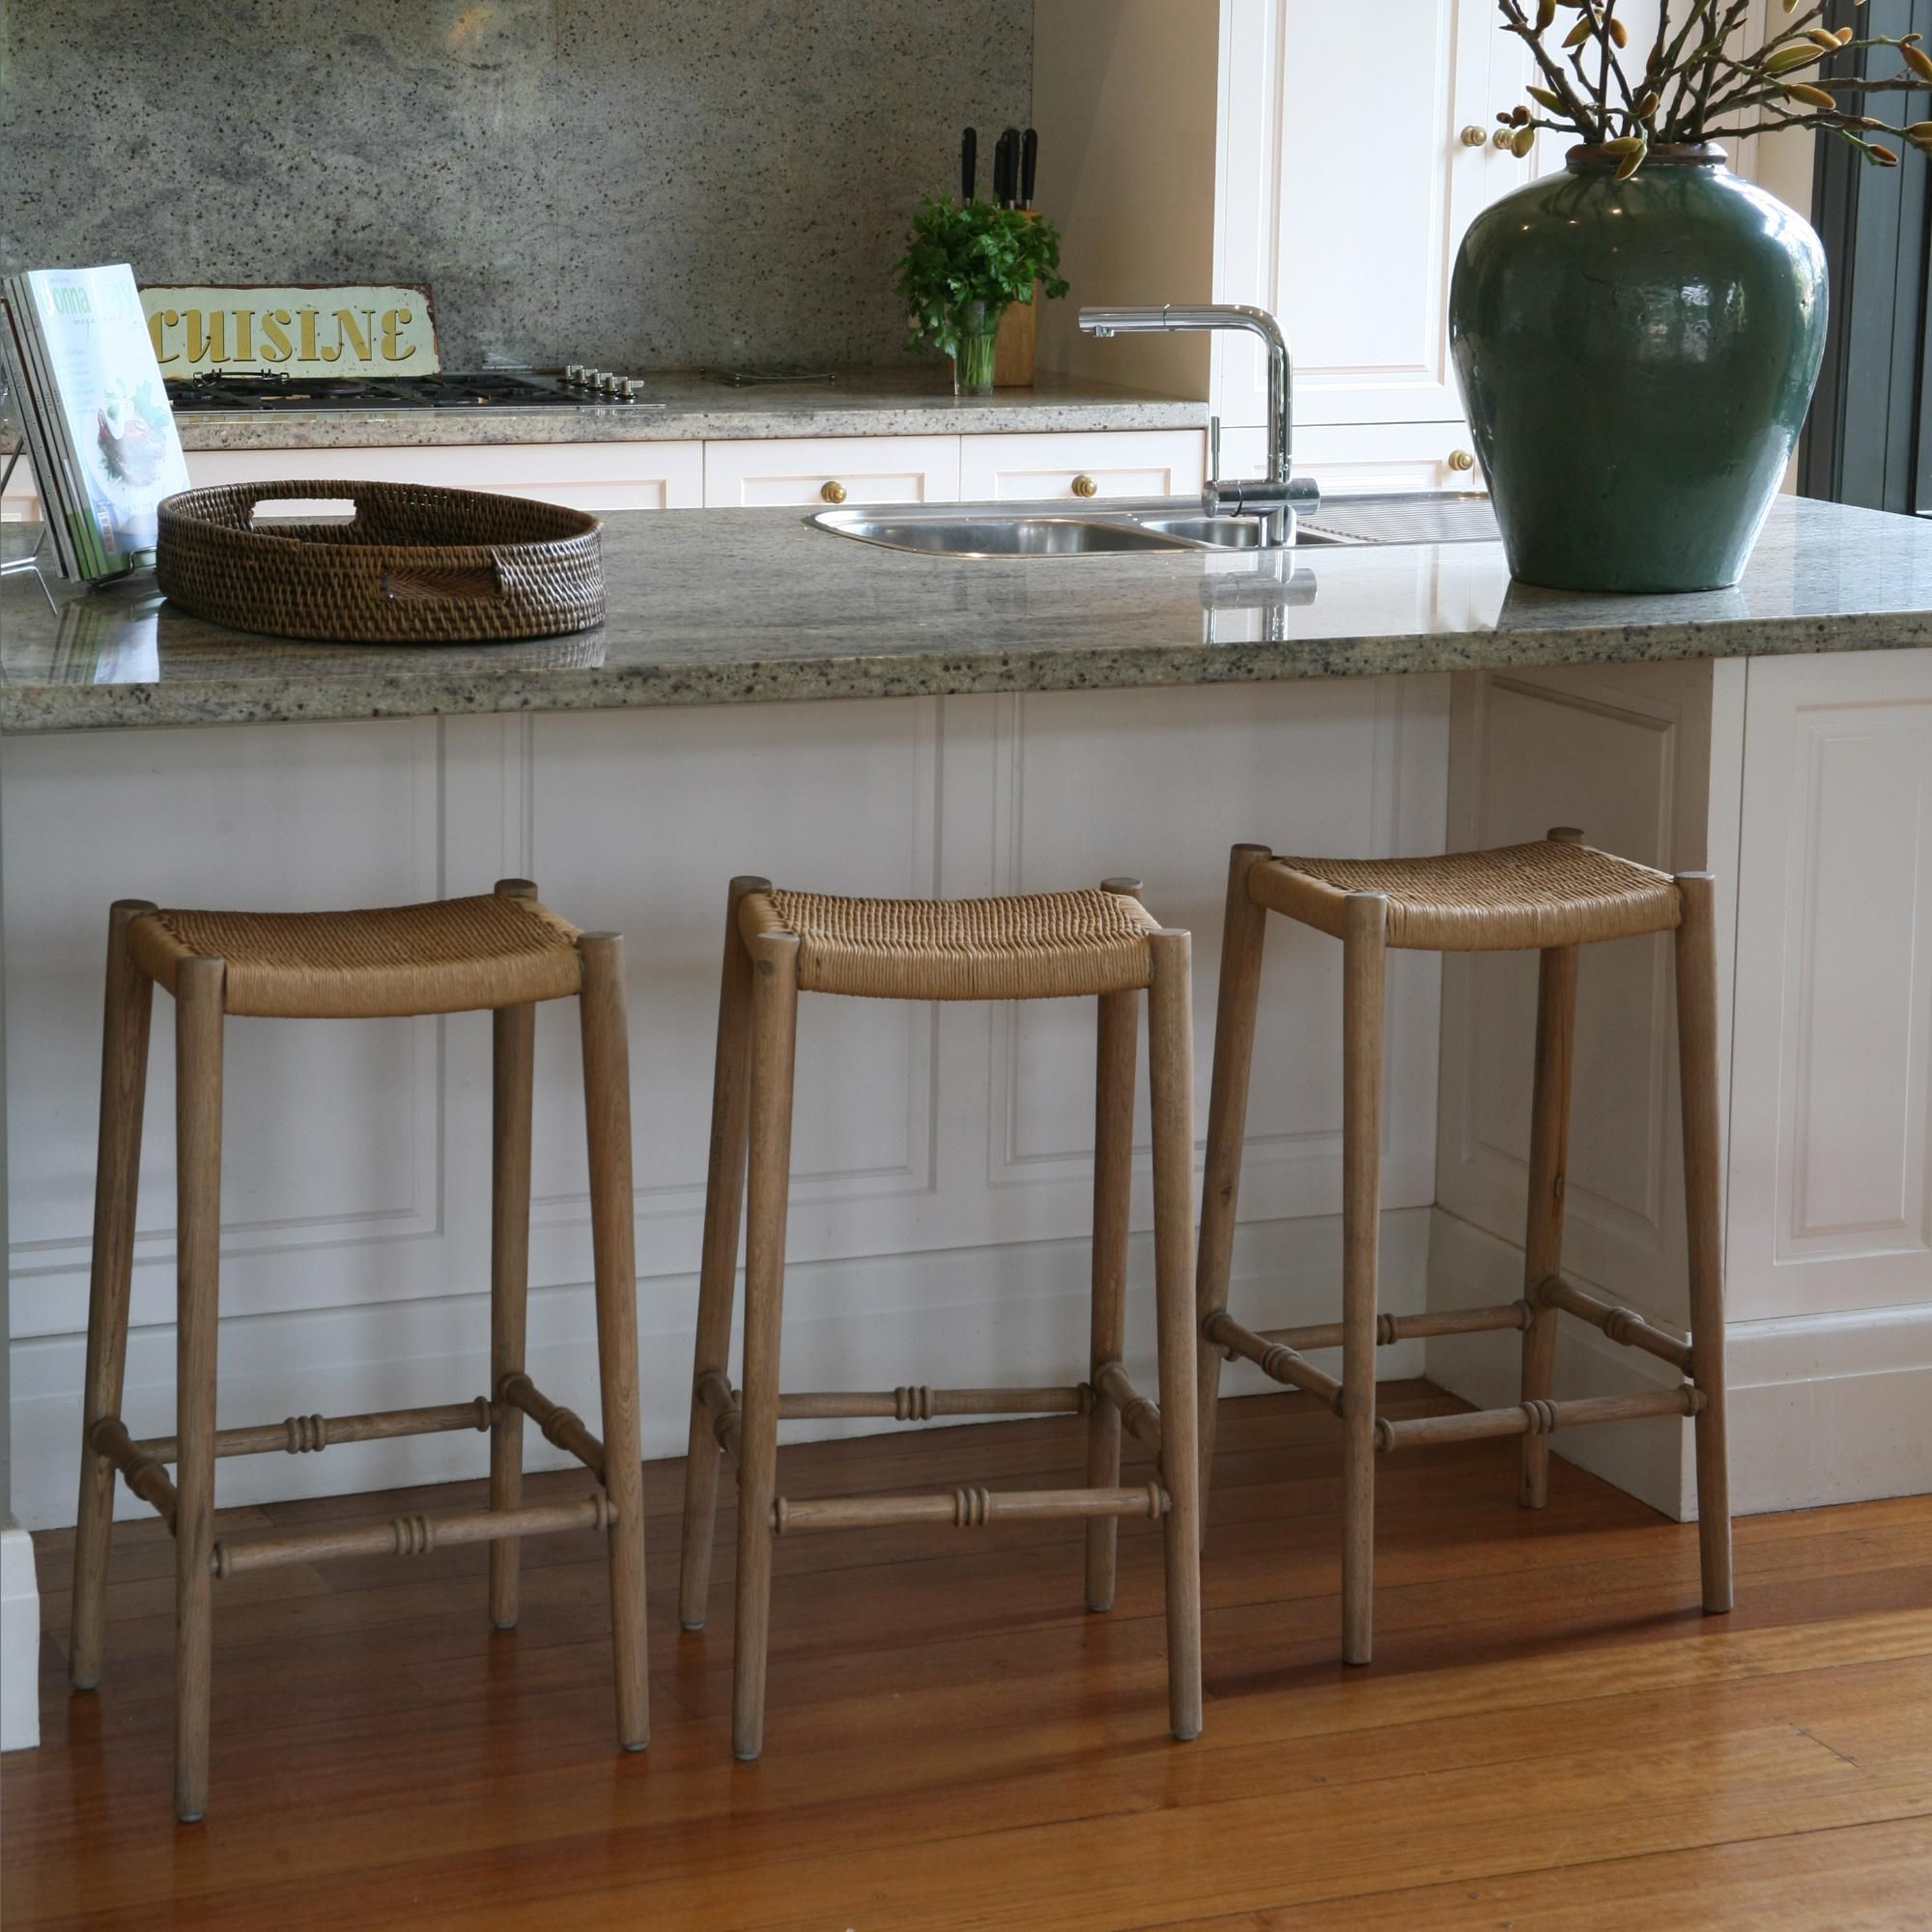 Cool Kitchen Stools: Furniture : Unique Kitchen Bar Stools From Bed Bath